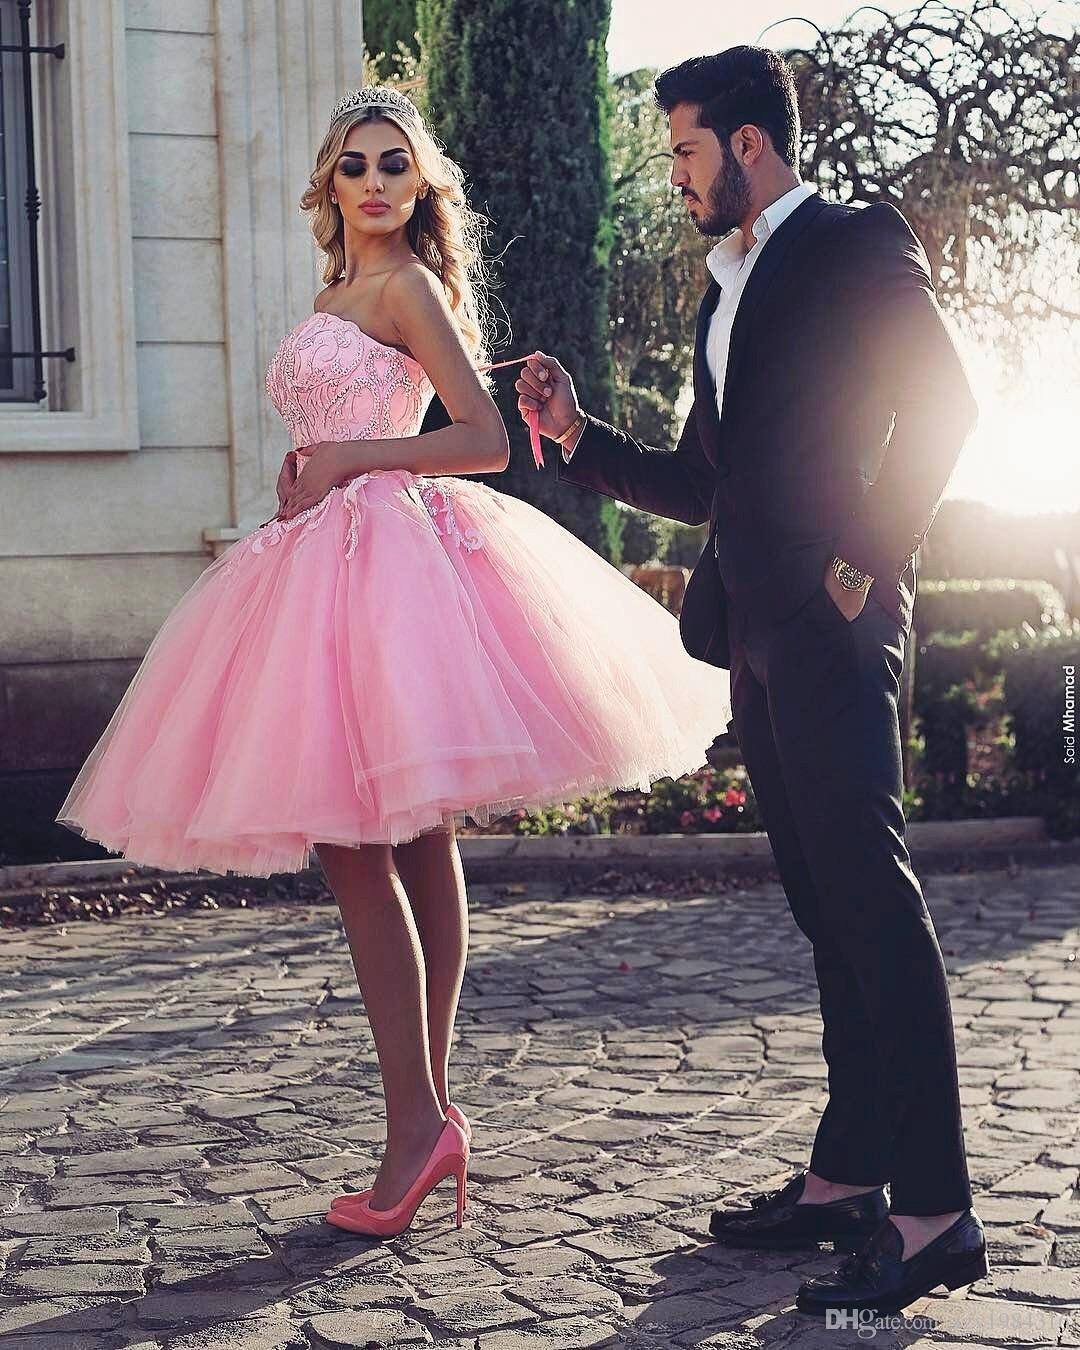 TuTu Pink Knee-Length Prom Dress Stylish Strapless Beaded Lace Appliques Pretty Cocktail Party Dress Puffy Tulle Short Lovely Evening Gowns